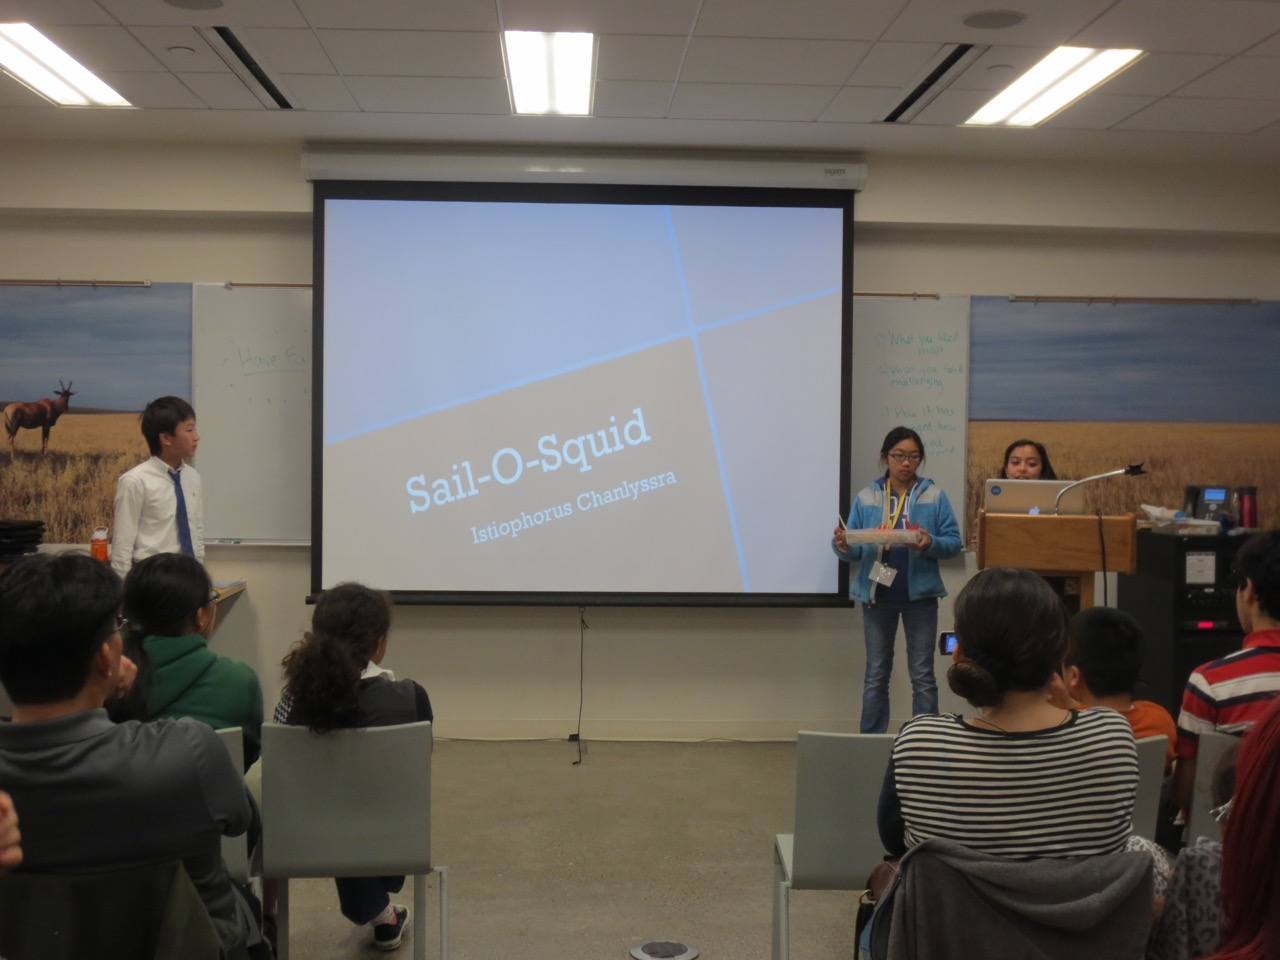 Sailosquid final presentation